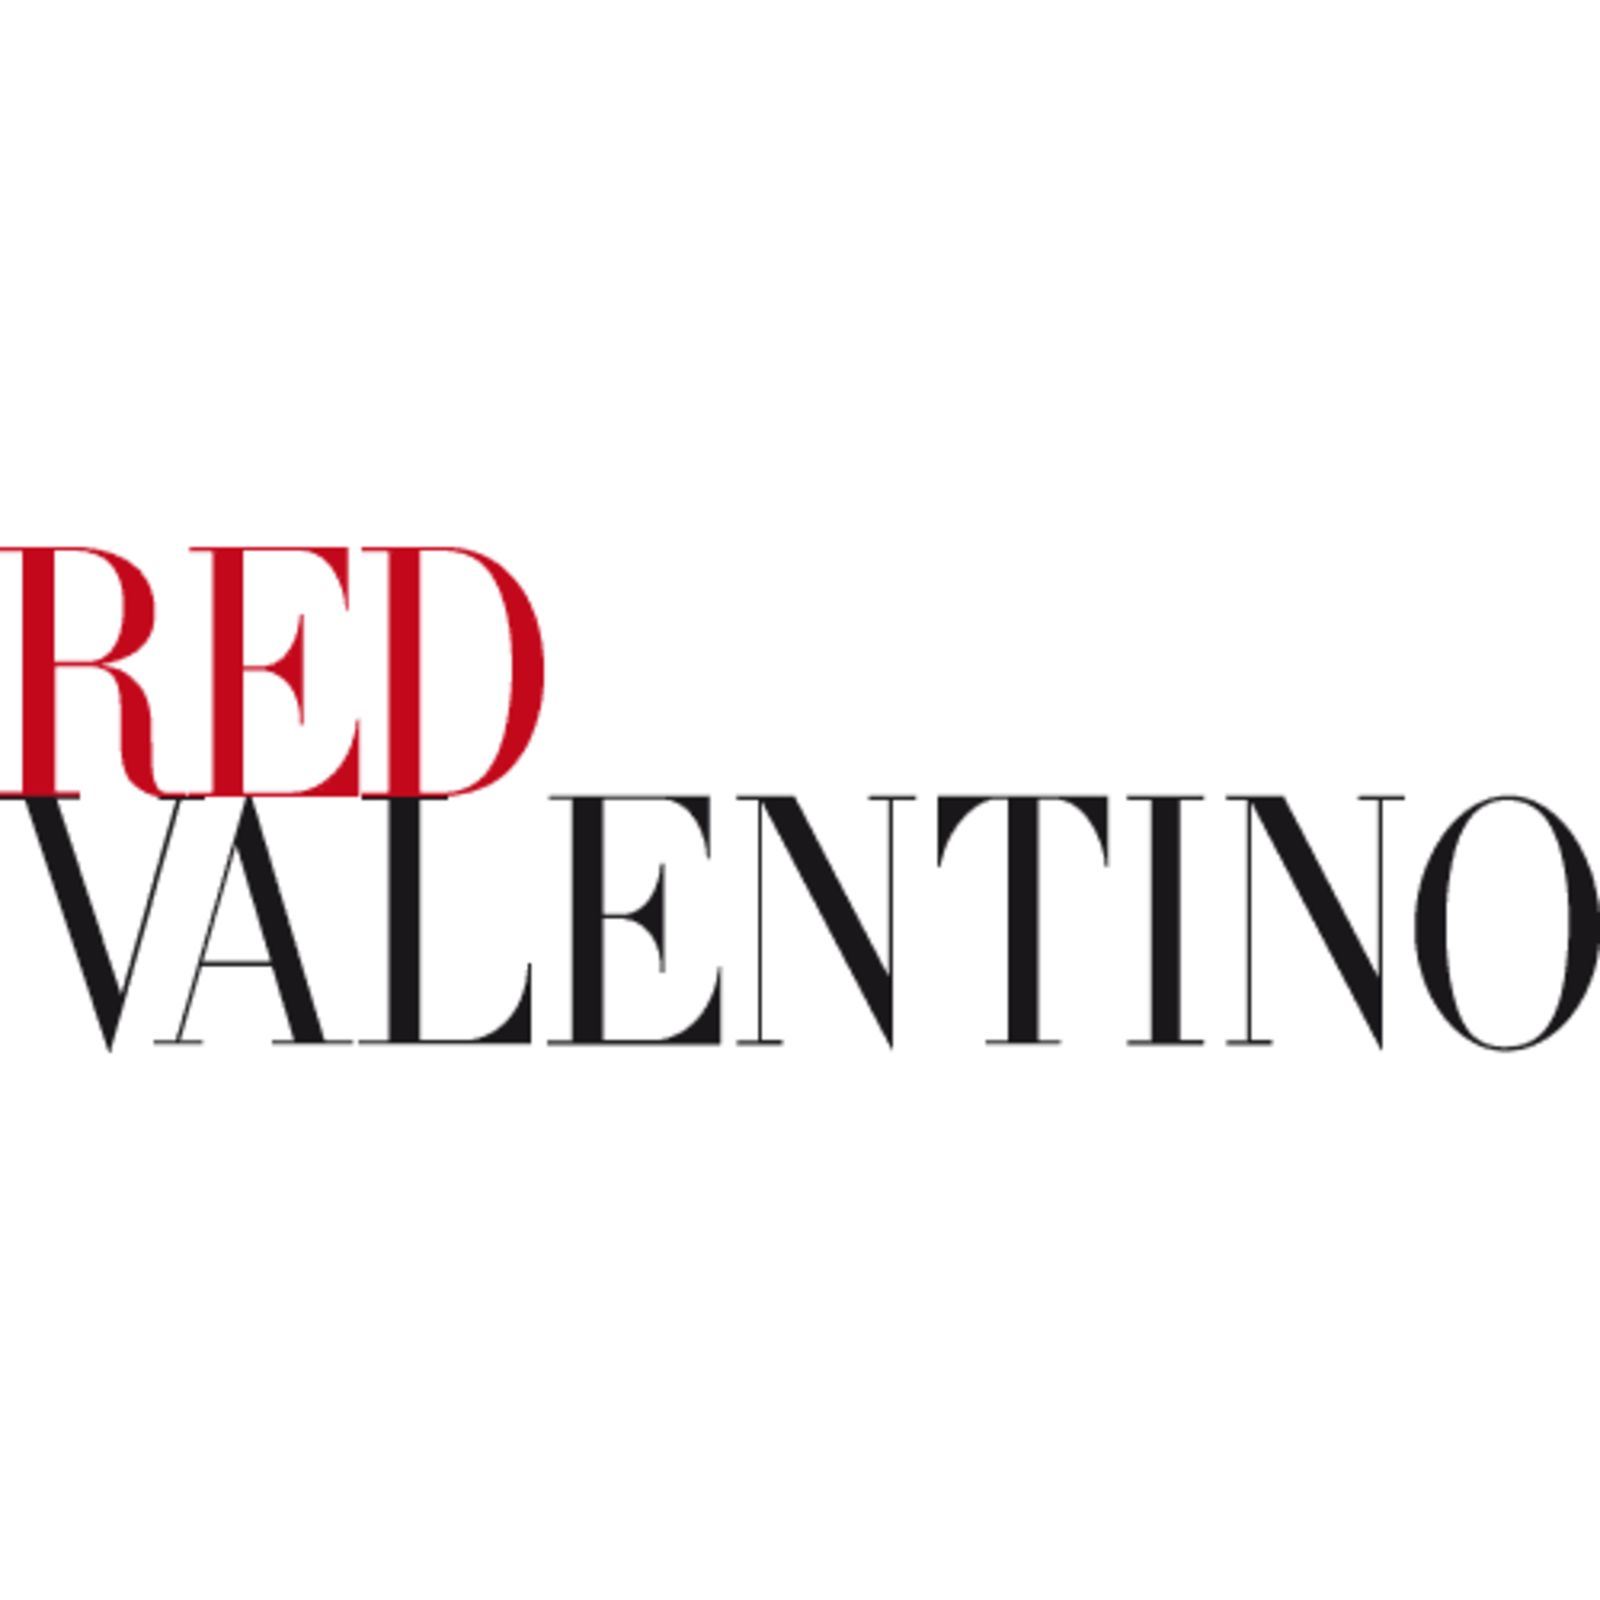 RED VALENTINO (Bild 1)